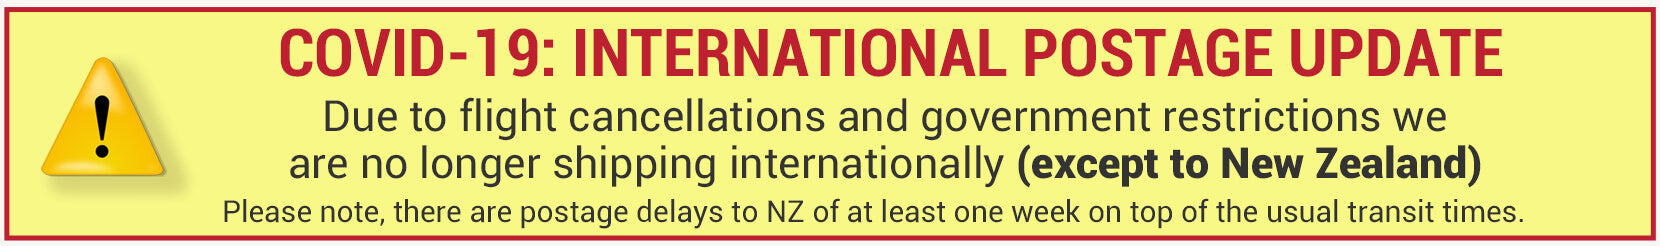 international postage: We are only shipping to NZ. Expect delays of at least one week